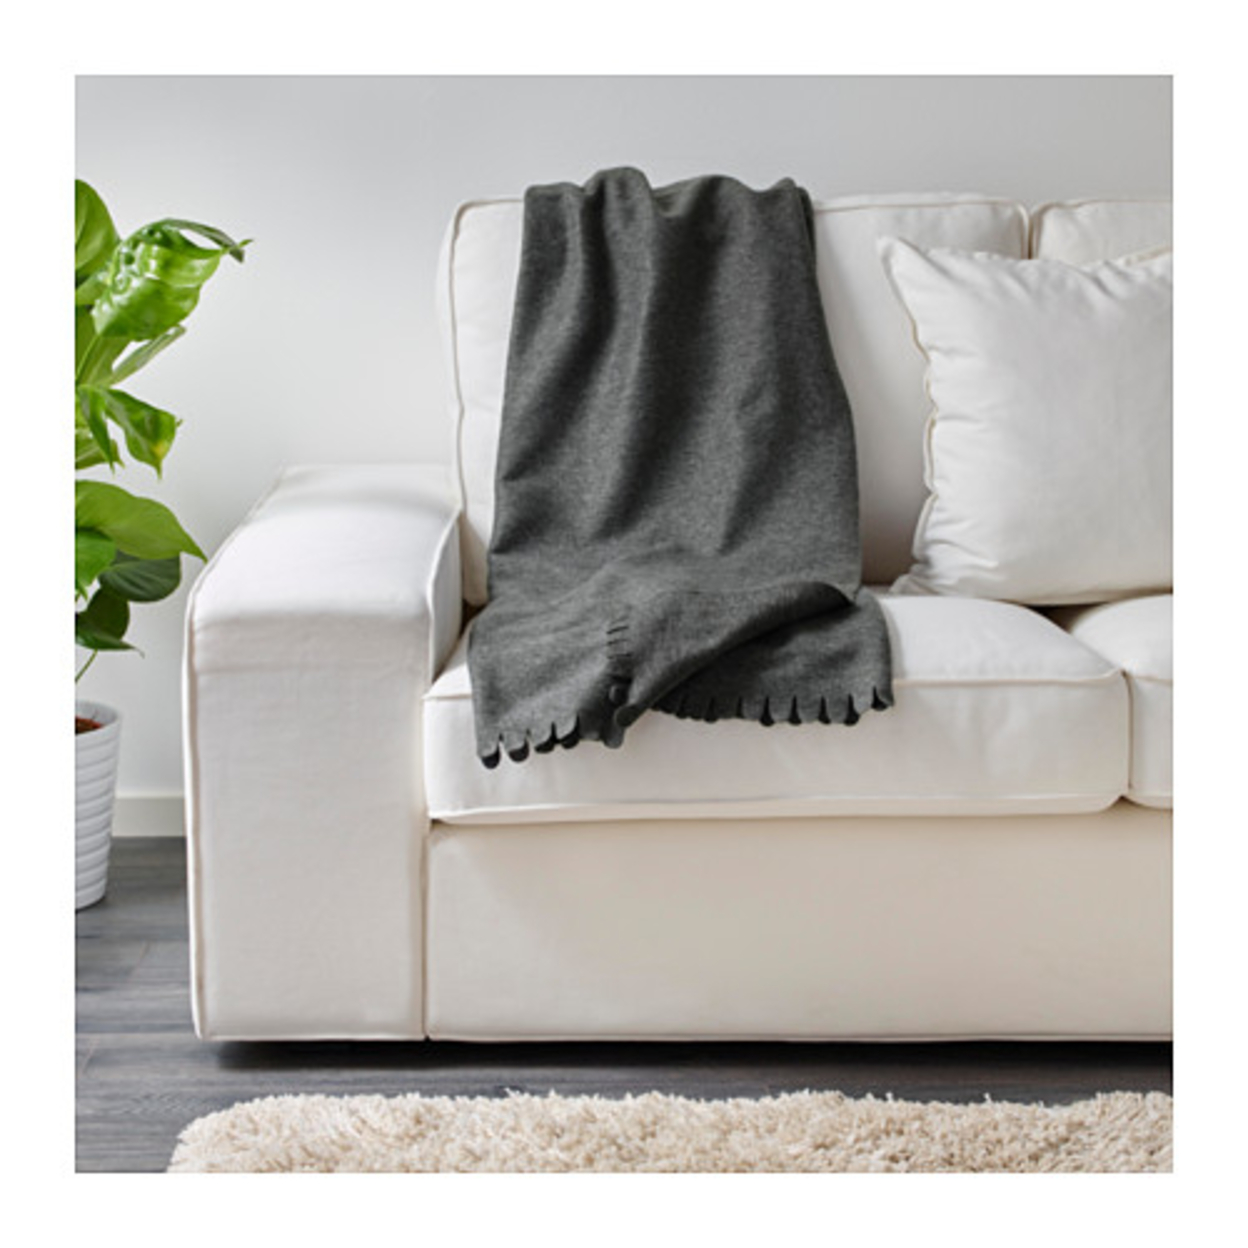 100 % Polyester Comfort Soft Blankets And Throws Gray Color